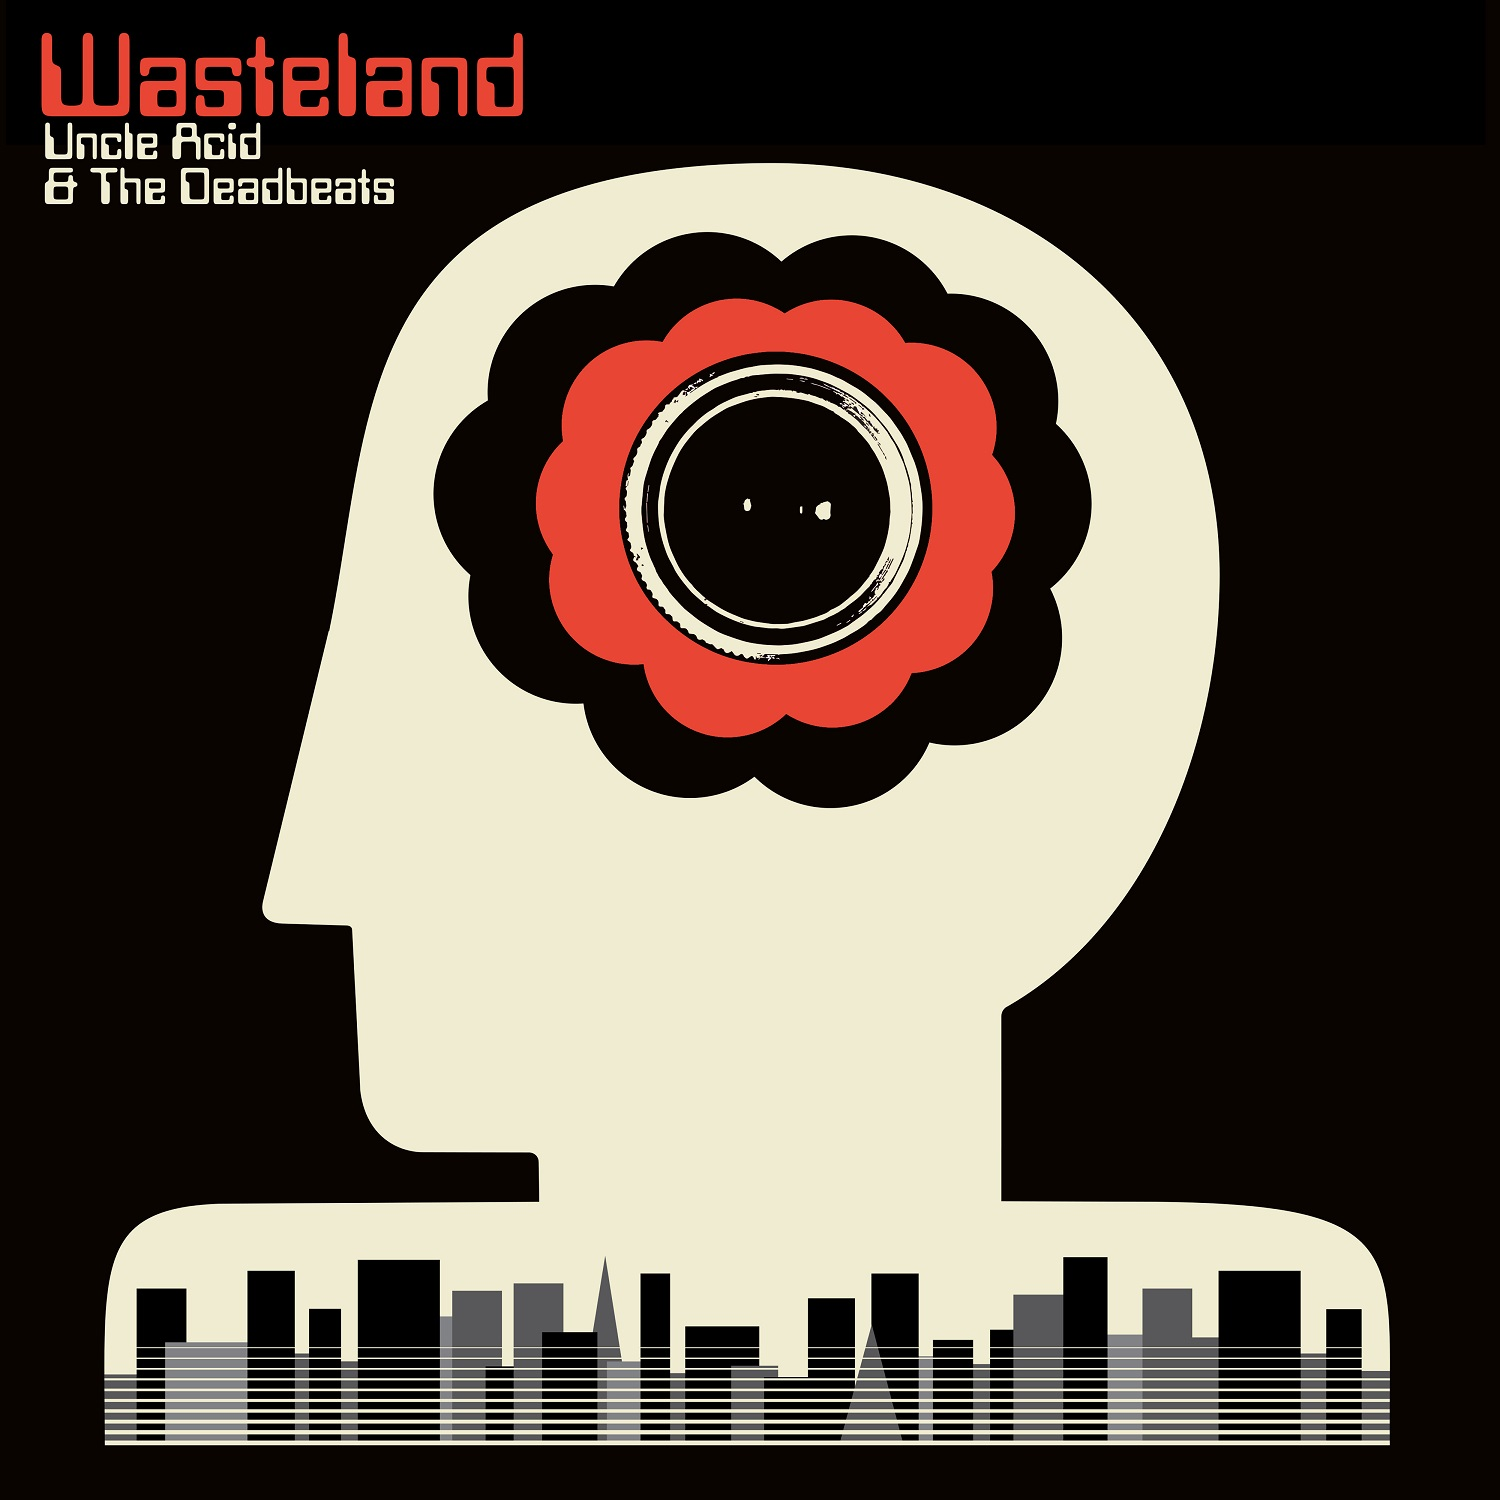 Hd Supreme Wallpaper Uncle Acid And The Deadbeats Wasteland Review Angry